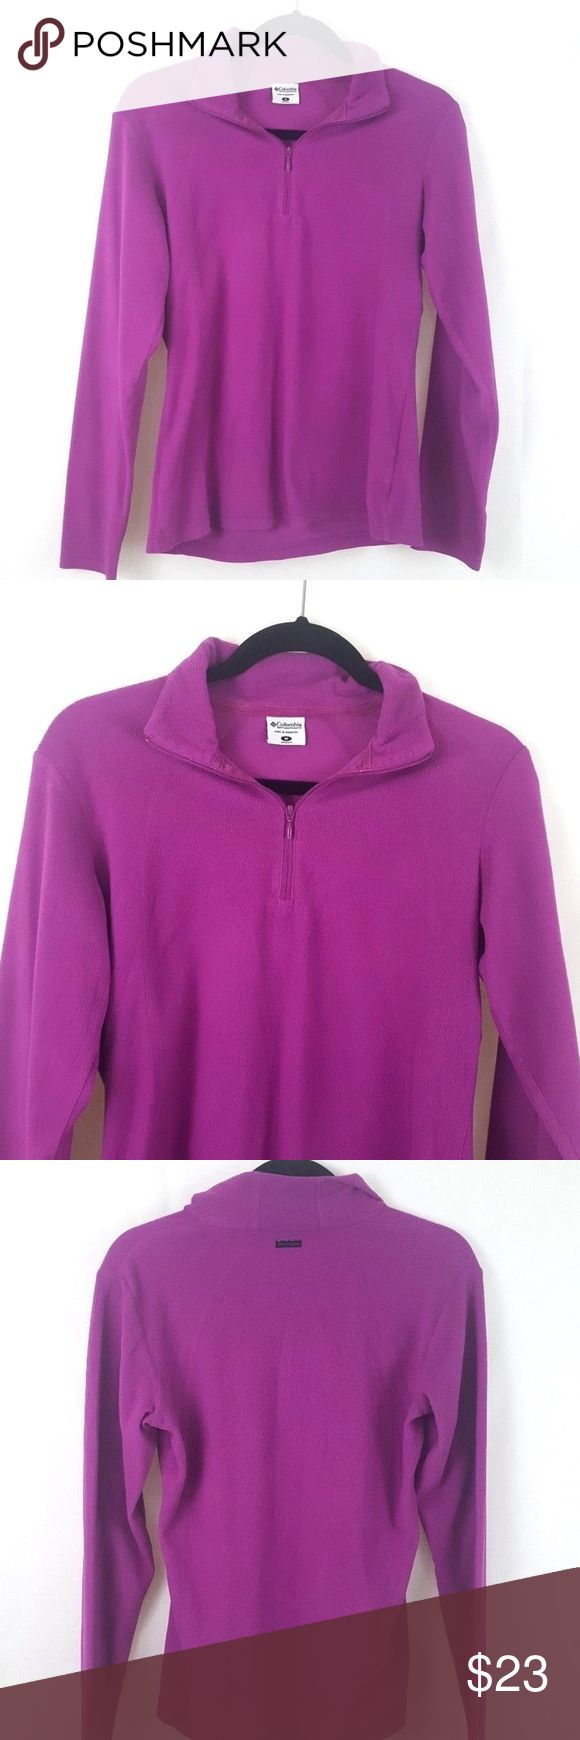 "Womens Columbia Fleece Pullover Purple 1/4 Zip (M) Columbia pullover 1/4 Zip Gently worn. Mild wash wear Polyester Armpit to armpit 18"" flat Womens Size Medium Columbia Tops Sweatshirts & Hoodies"